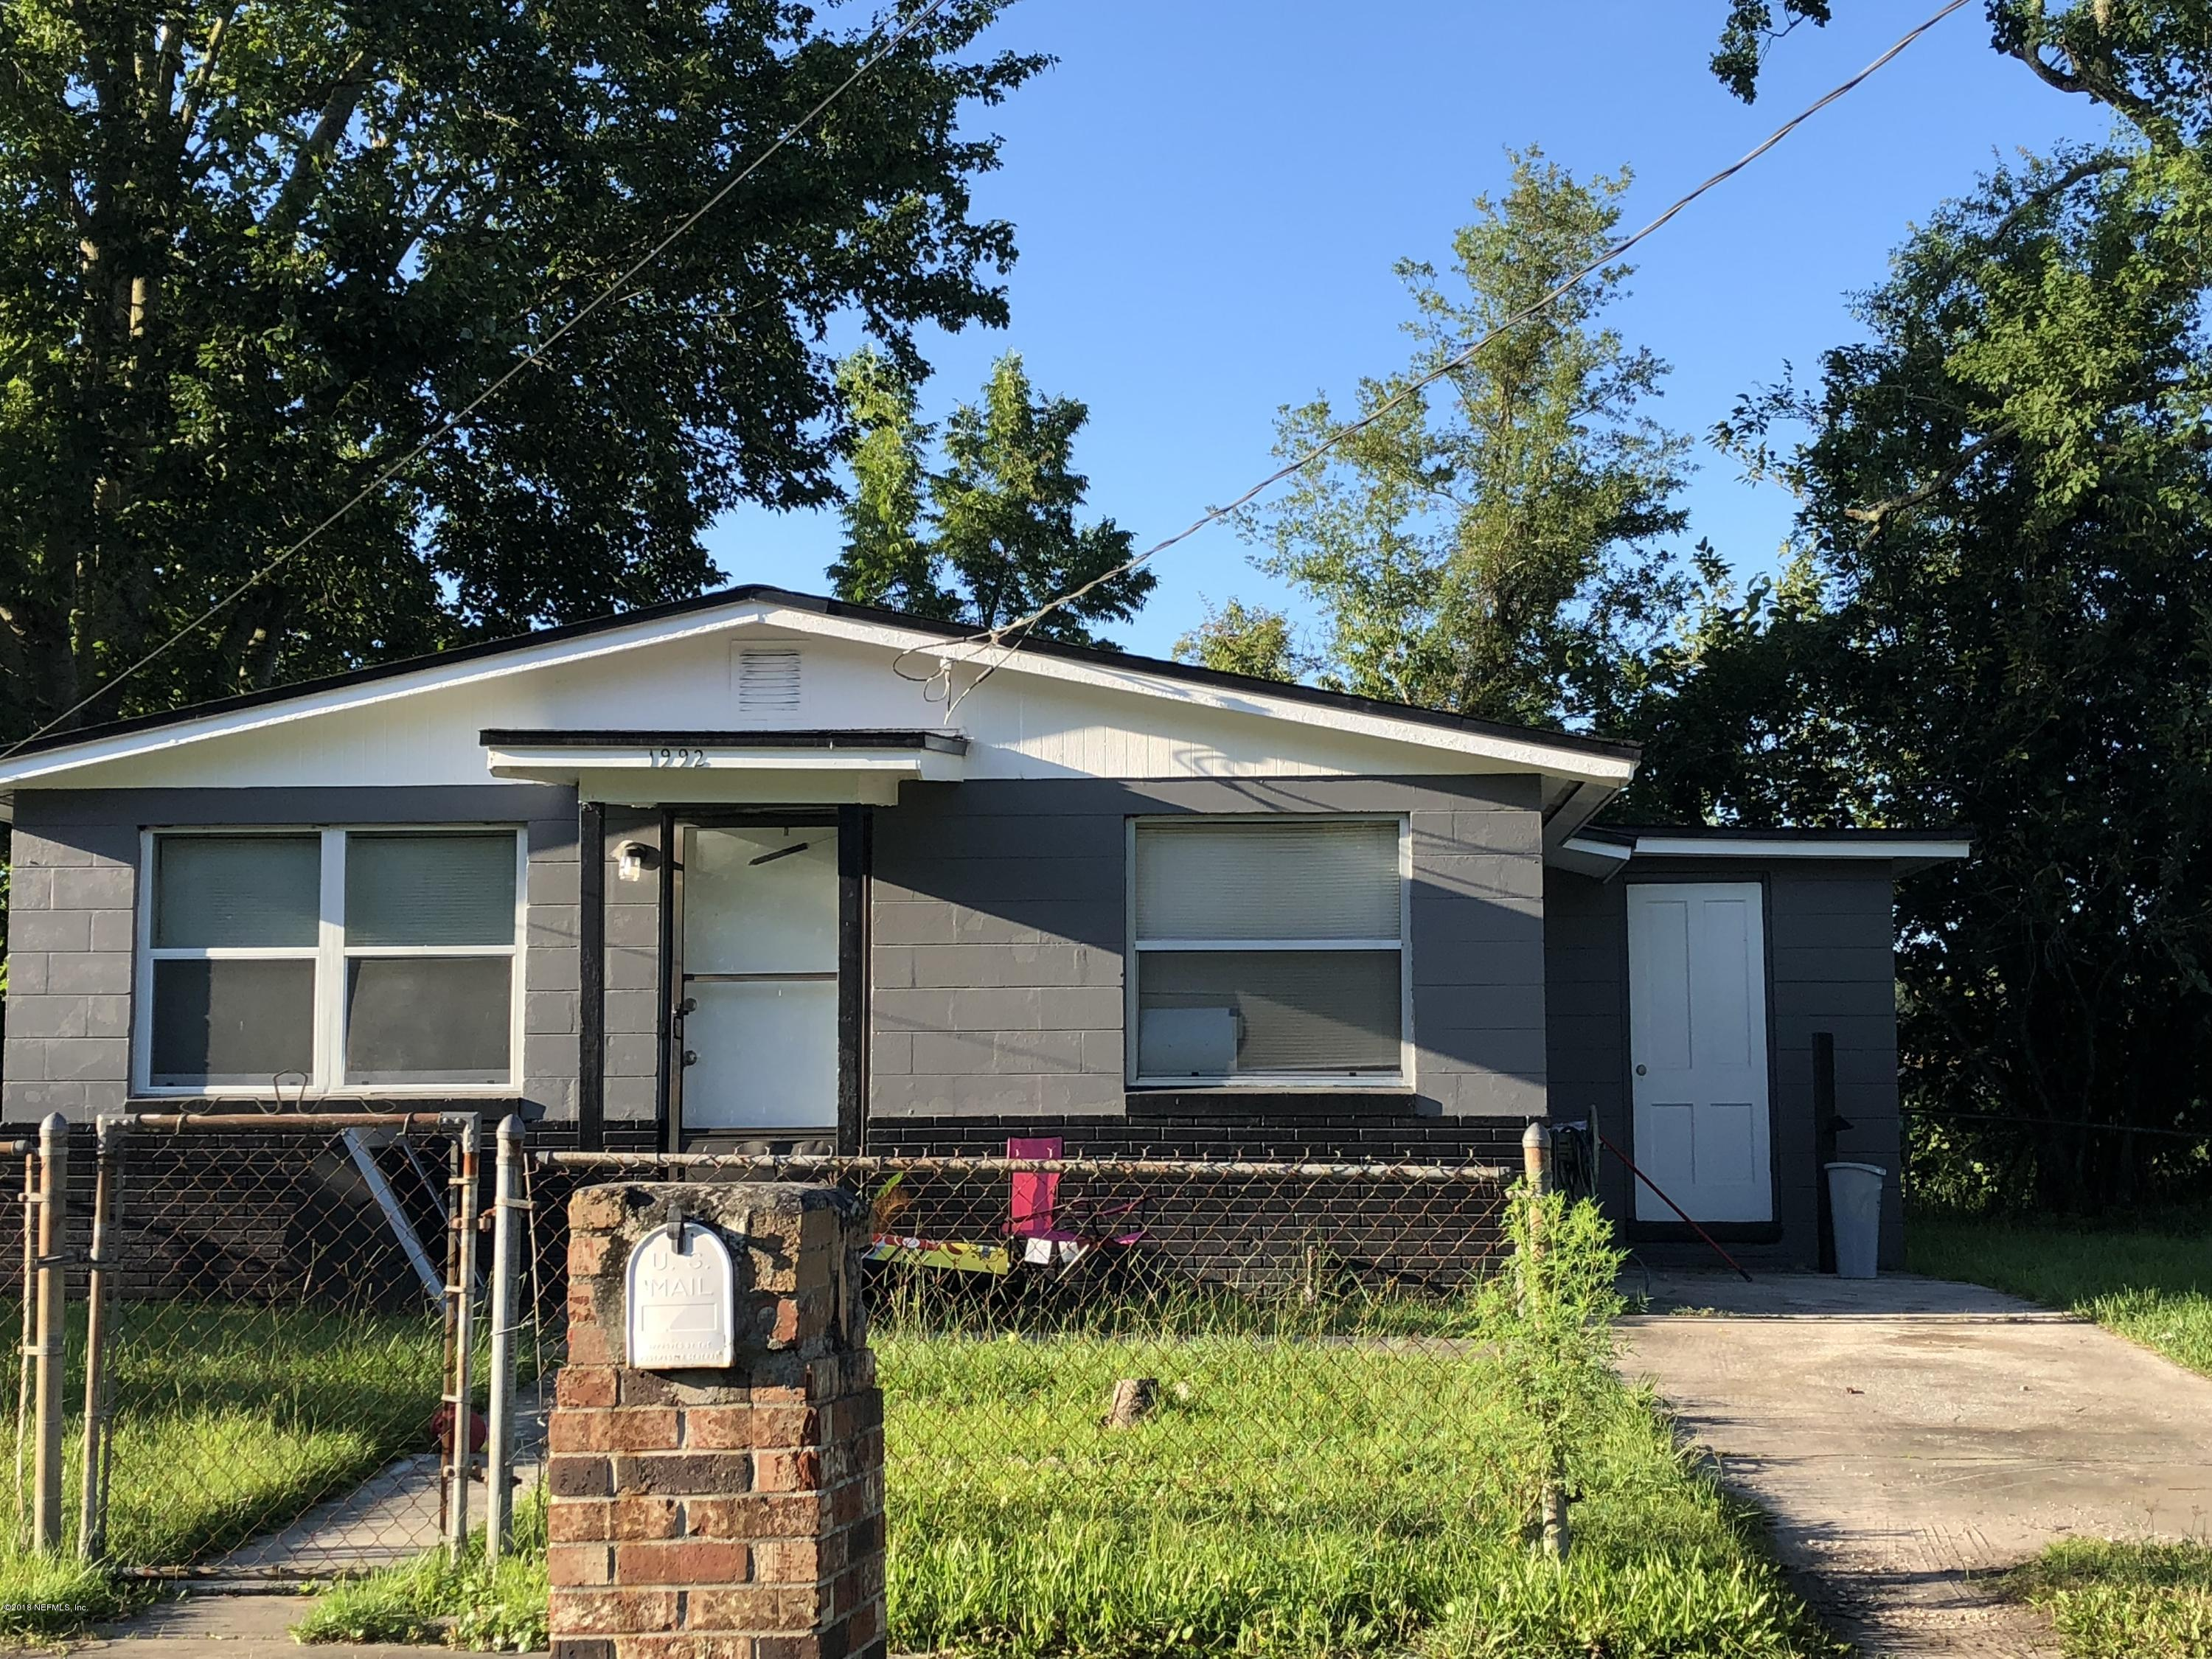 1992 3RD, JACKSONVILLE, FLORIDA 32209, 3 Bedrooms Bedrooms, ,1 BathroomBathrooms,Residential - single family,For sale,3RD,950315